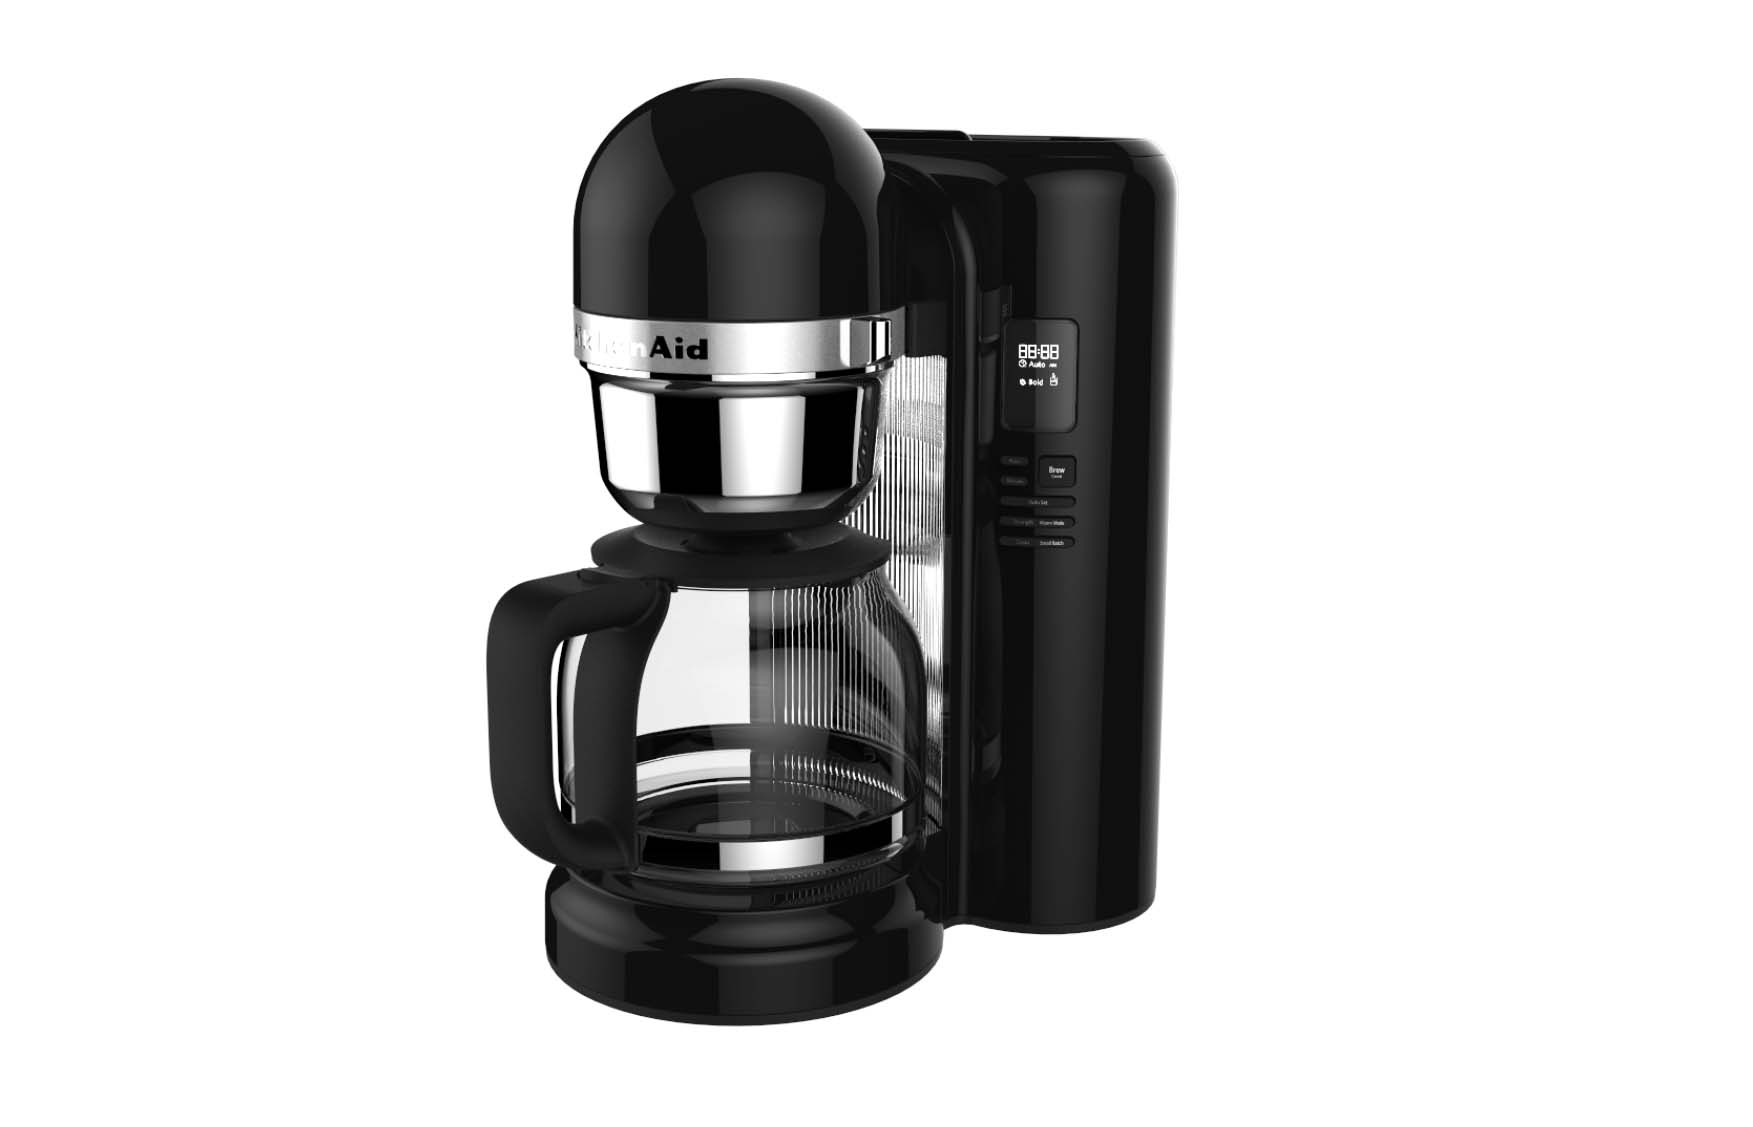 KitchenAid ® 12-Cup Coffee Maker with One Touch Brewing